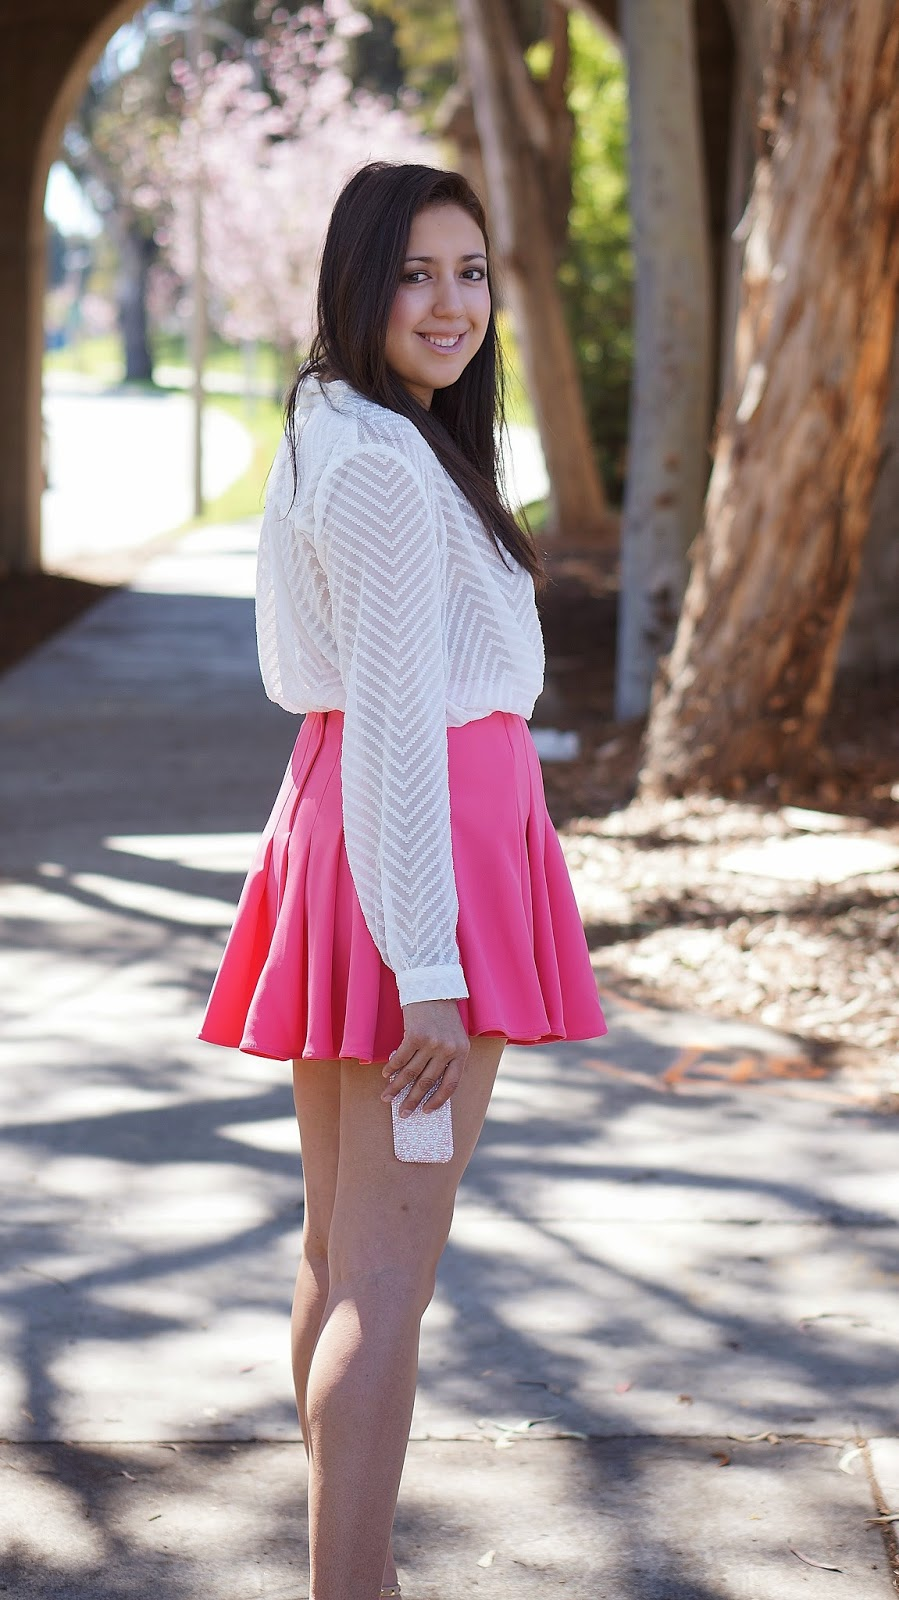 H&M pink pleated skirt. Bisou Bisou white twist neck top. Valentino Inspired heels